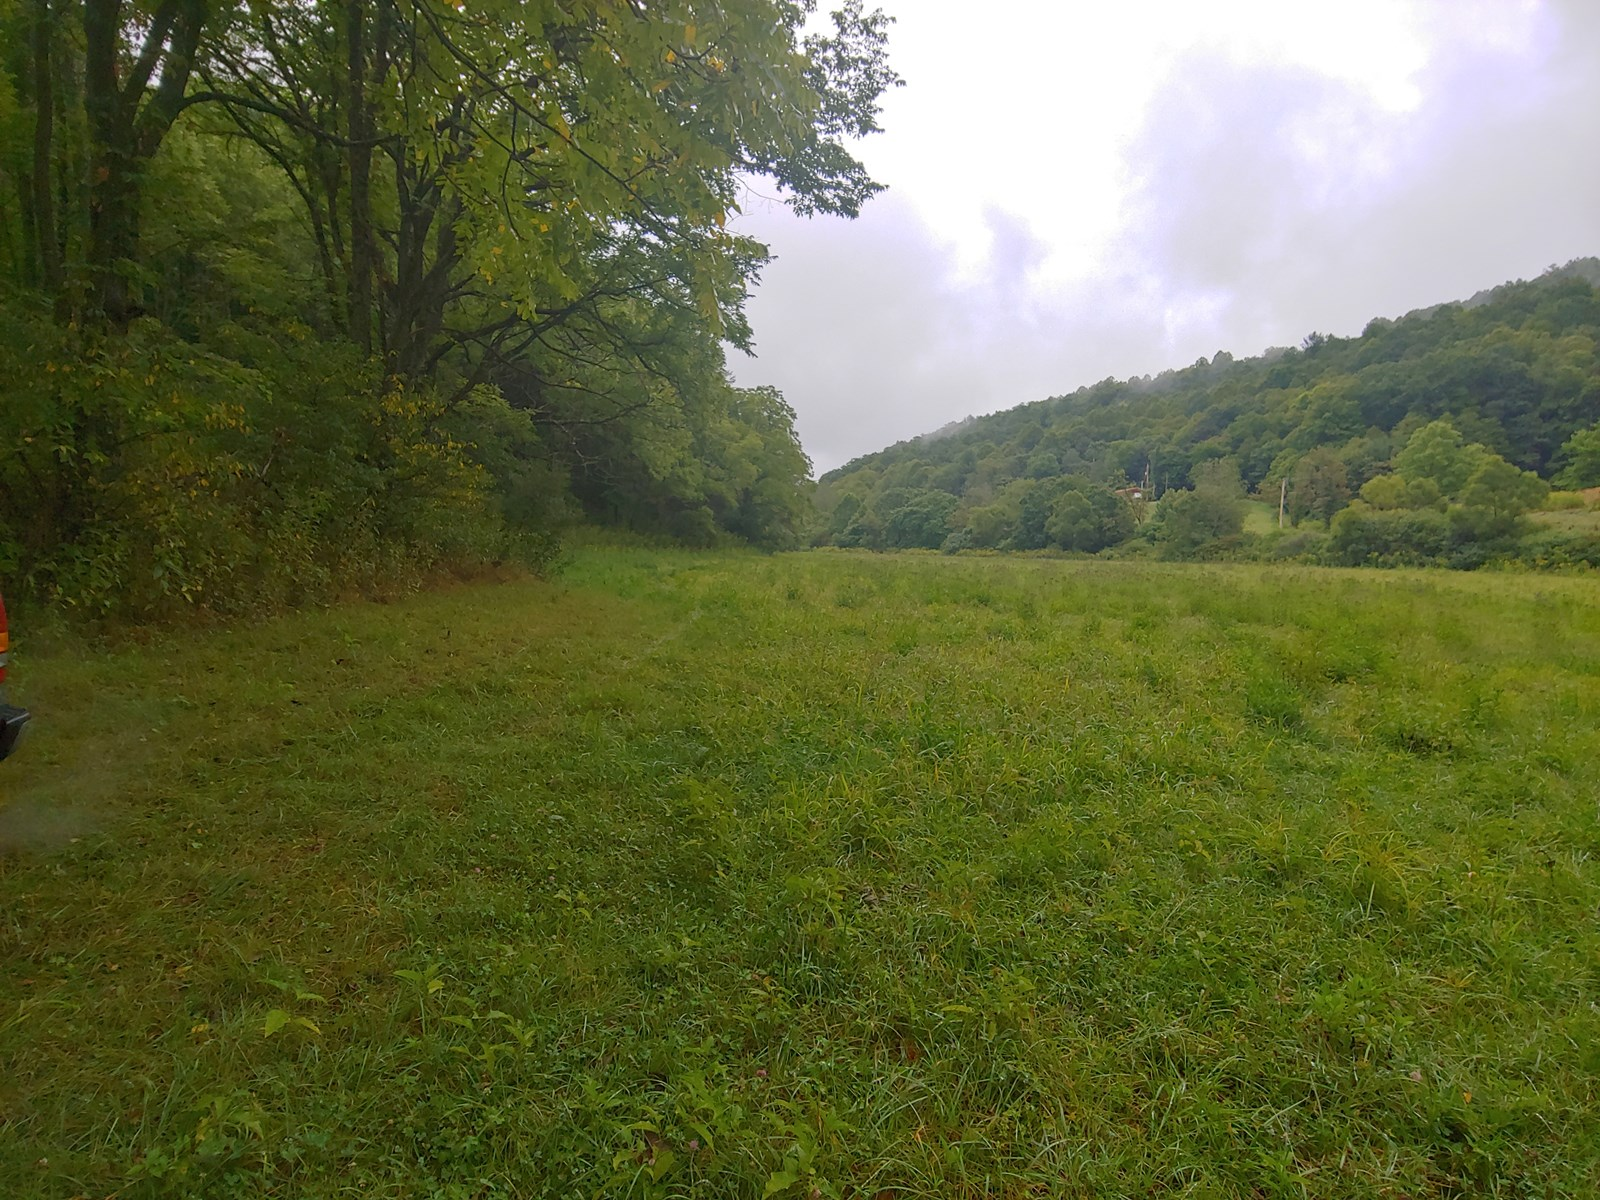 Recreational Property for Sale in Grayson County VA